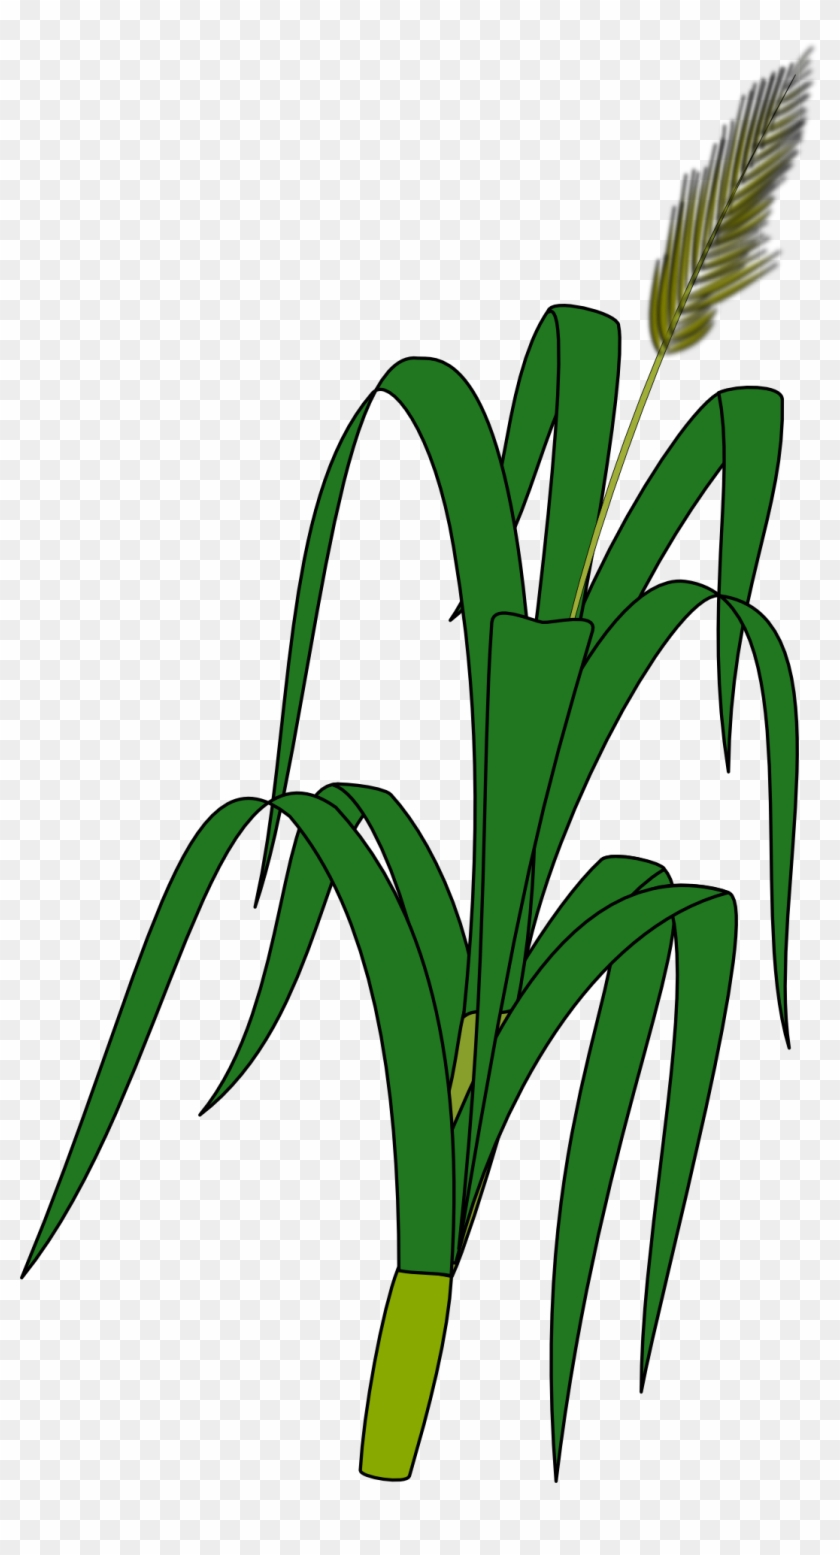 wheat plant to draw free transparent png clipart images download